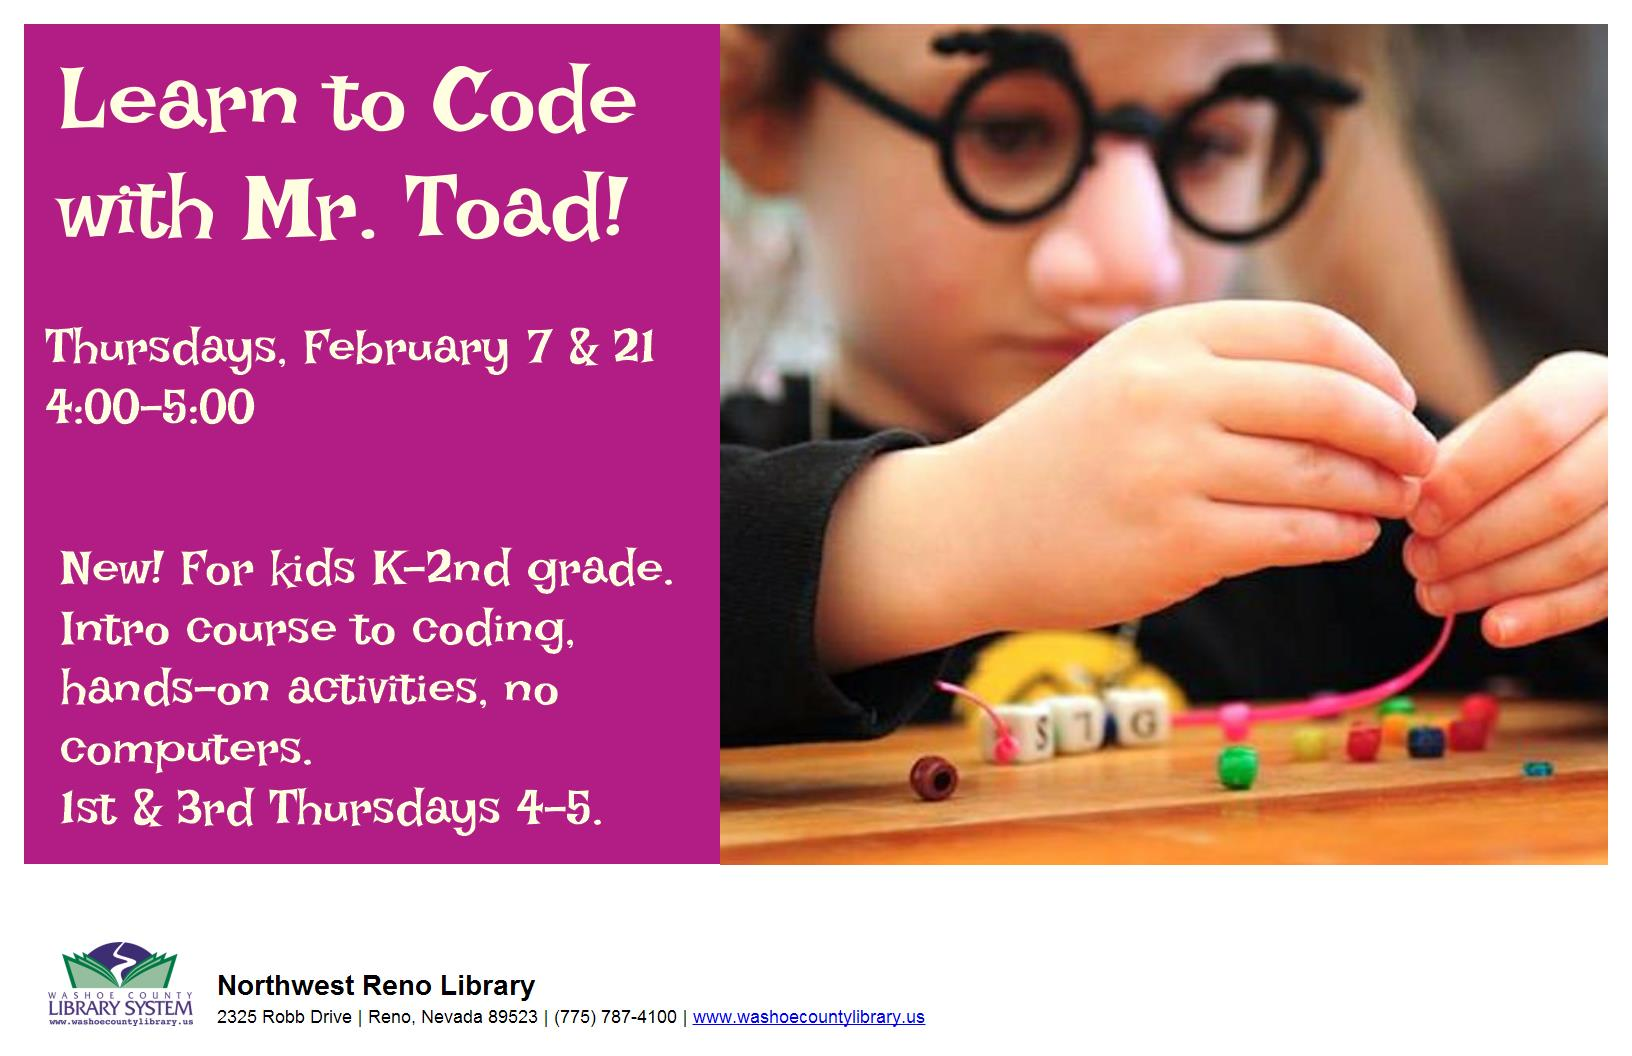 Learn to Code with Mr. Toad